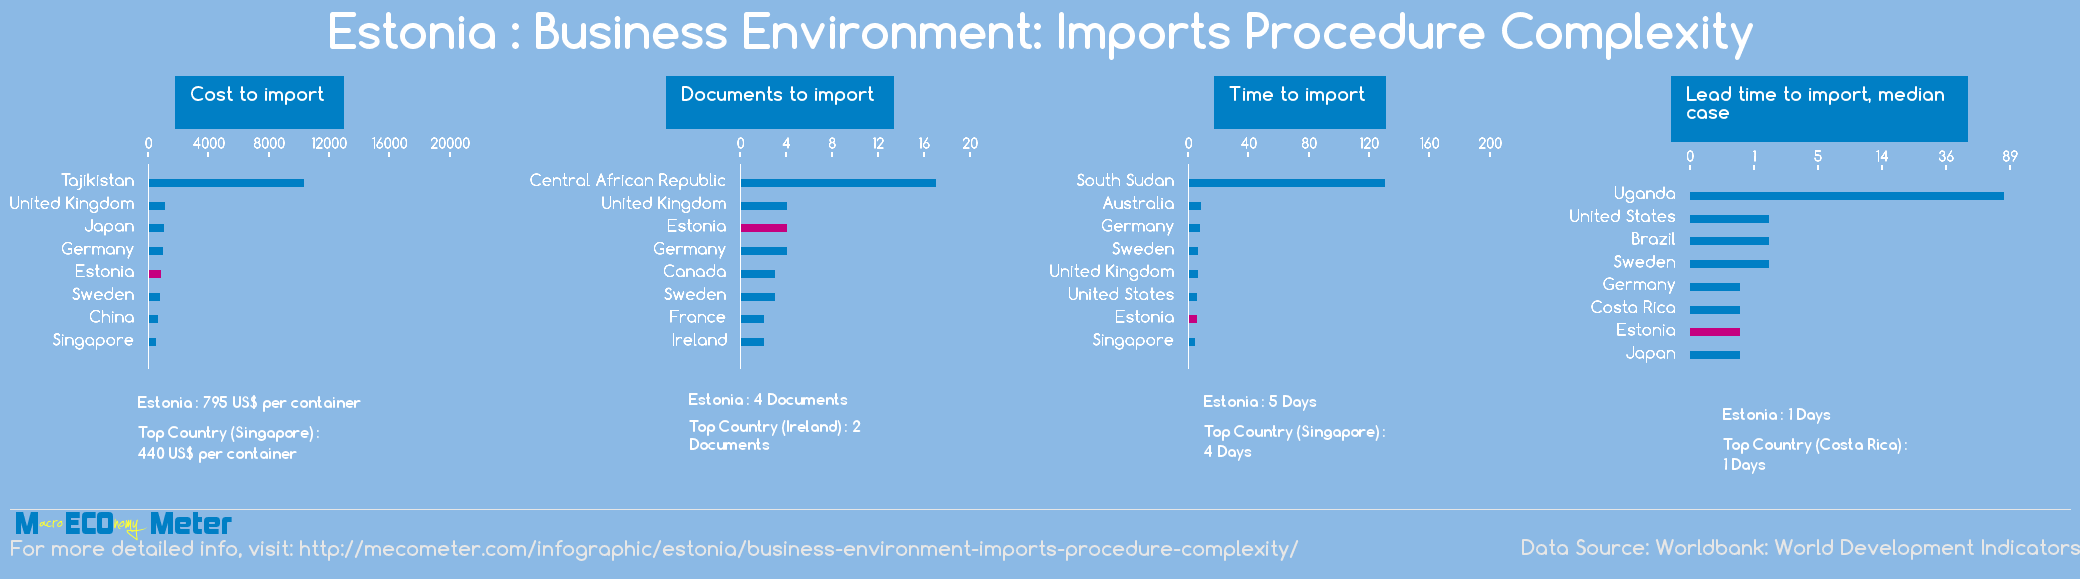 Estonia : Business Environment: Imports Procedure Complexity